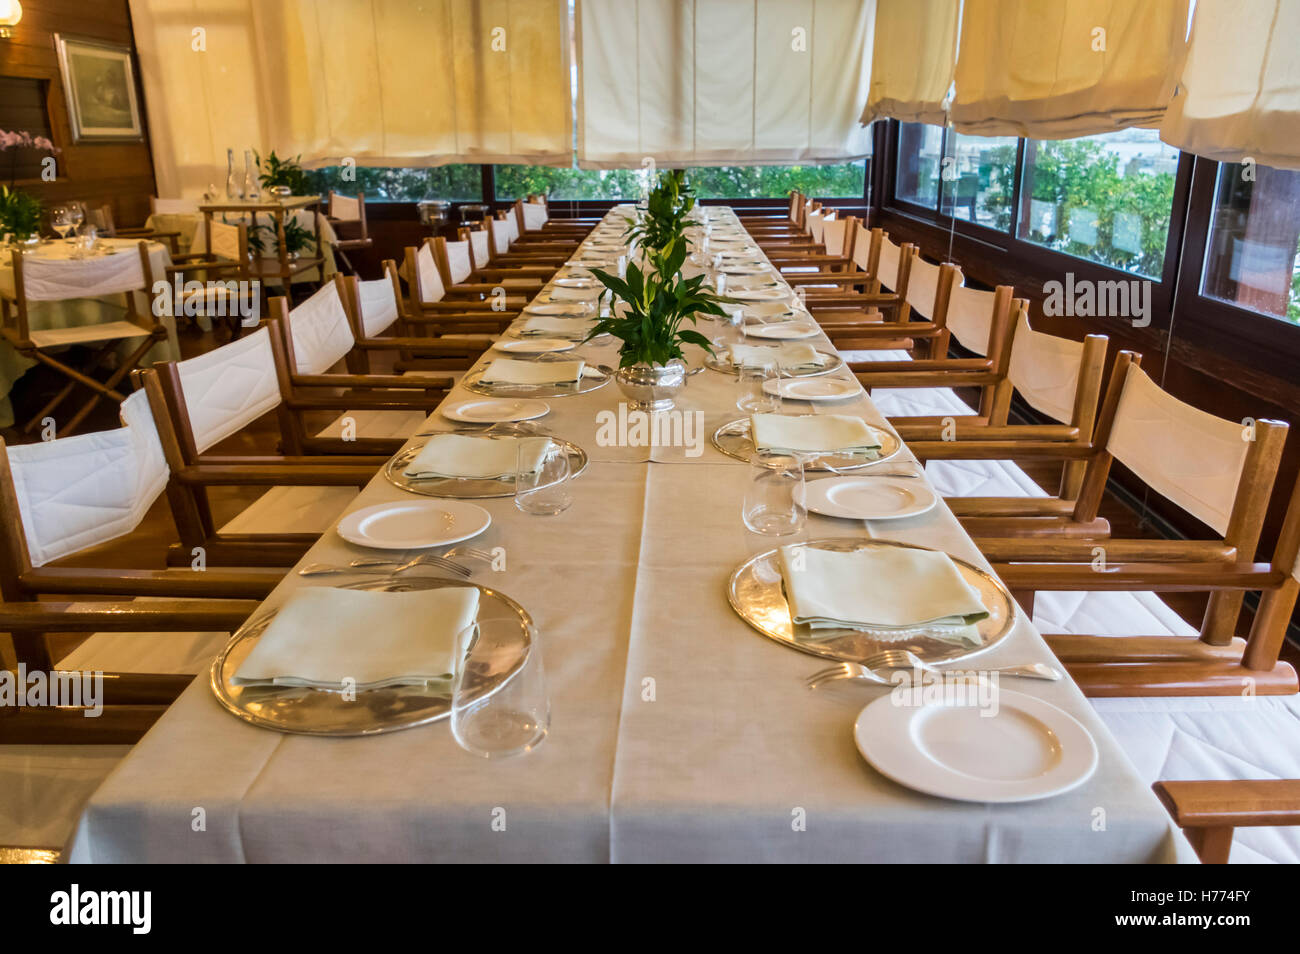 Long Table At An Italian Restaurant With Formal Place Setting For A  Banquet.   Stock